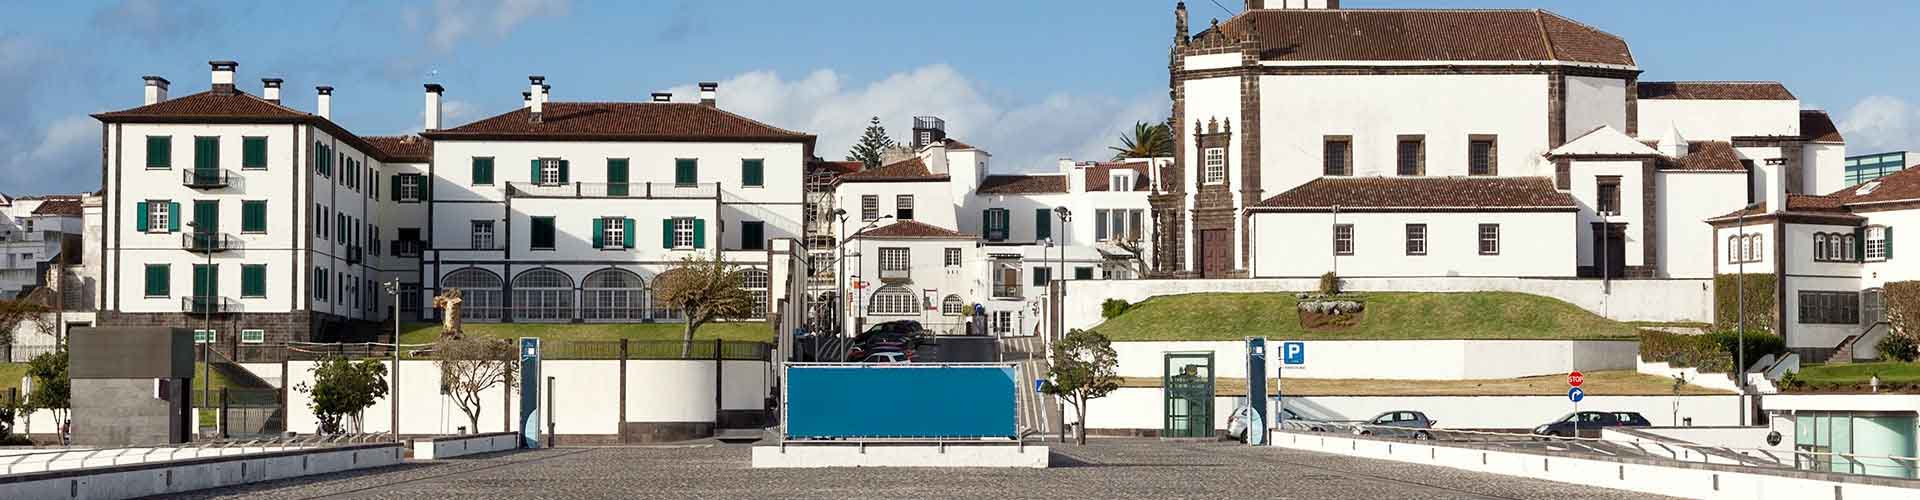 Ponta Delgada – Lodges in Ponta Delgada. Maps of Portugalsko, photos and reviews for each Lodge in Ponta Delgada.